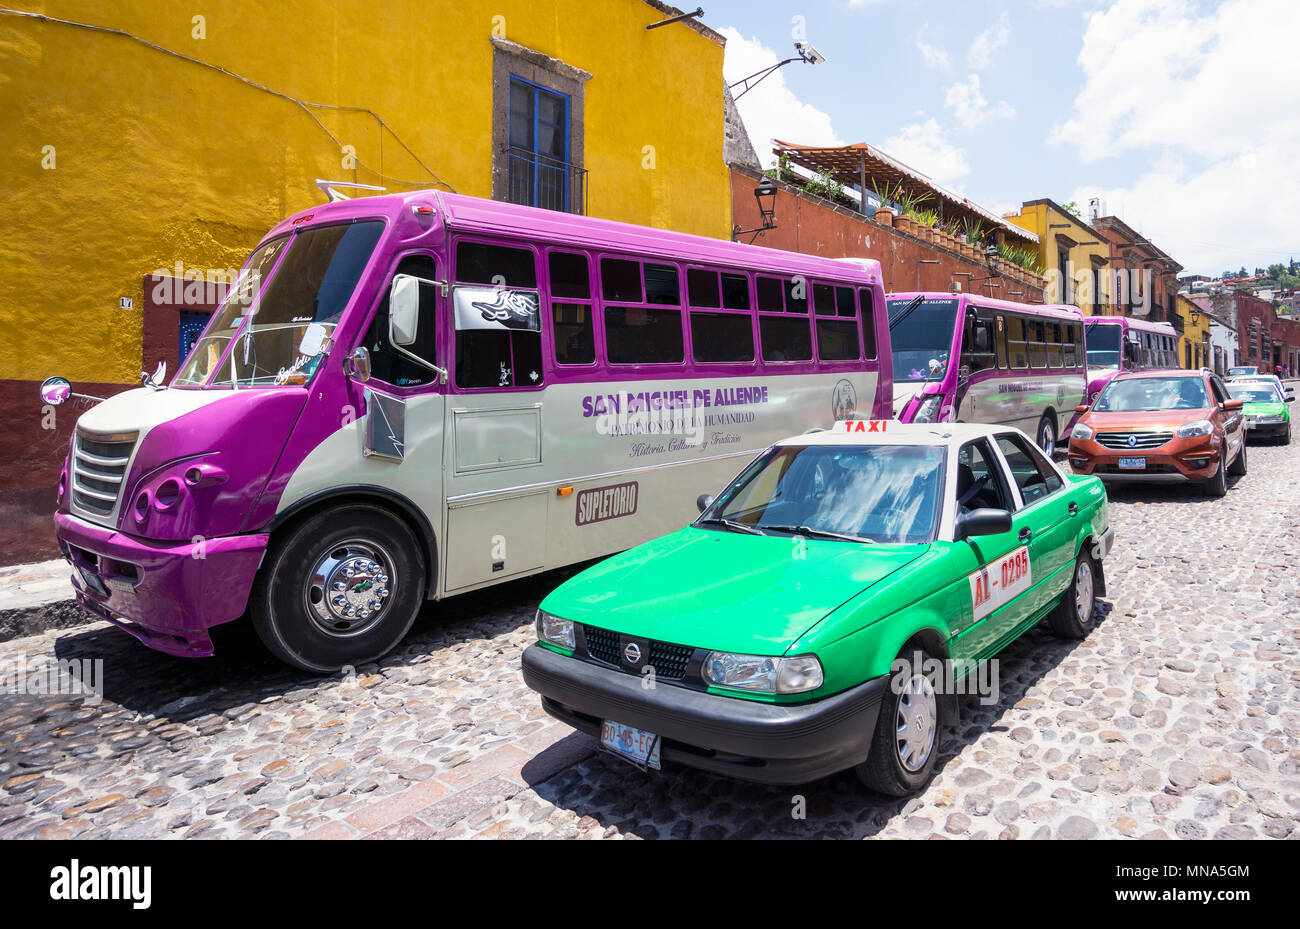 Various forms of transportation in San Miguel de Allende, Mexico: taxi, bus and private car. Stock Photo